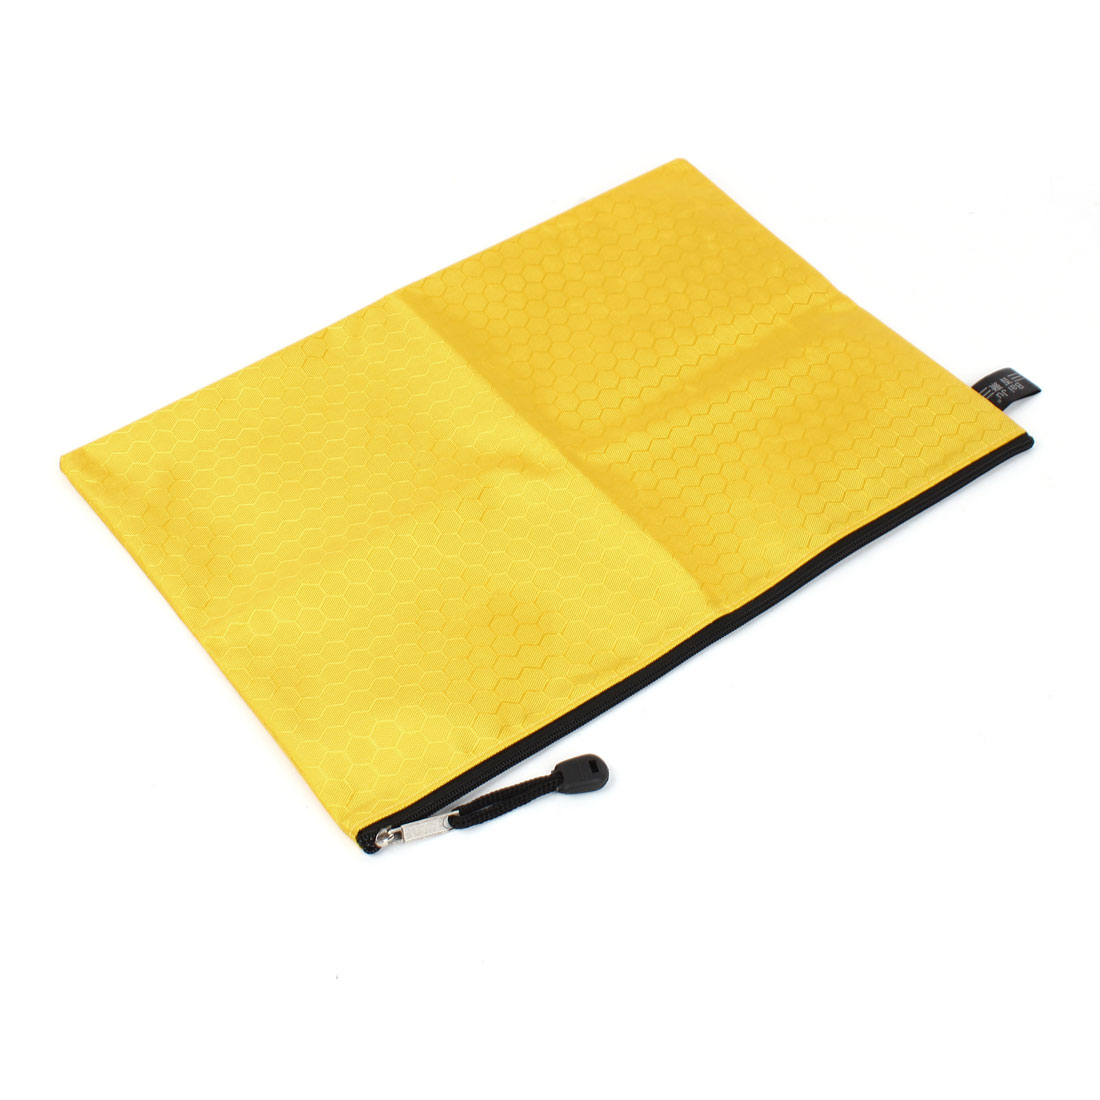 Yellow Zip up Nylon Hexagon Pattern A4 Paper Files Document Bag Holder Container